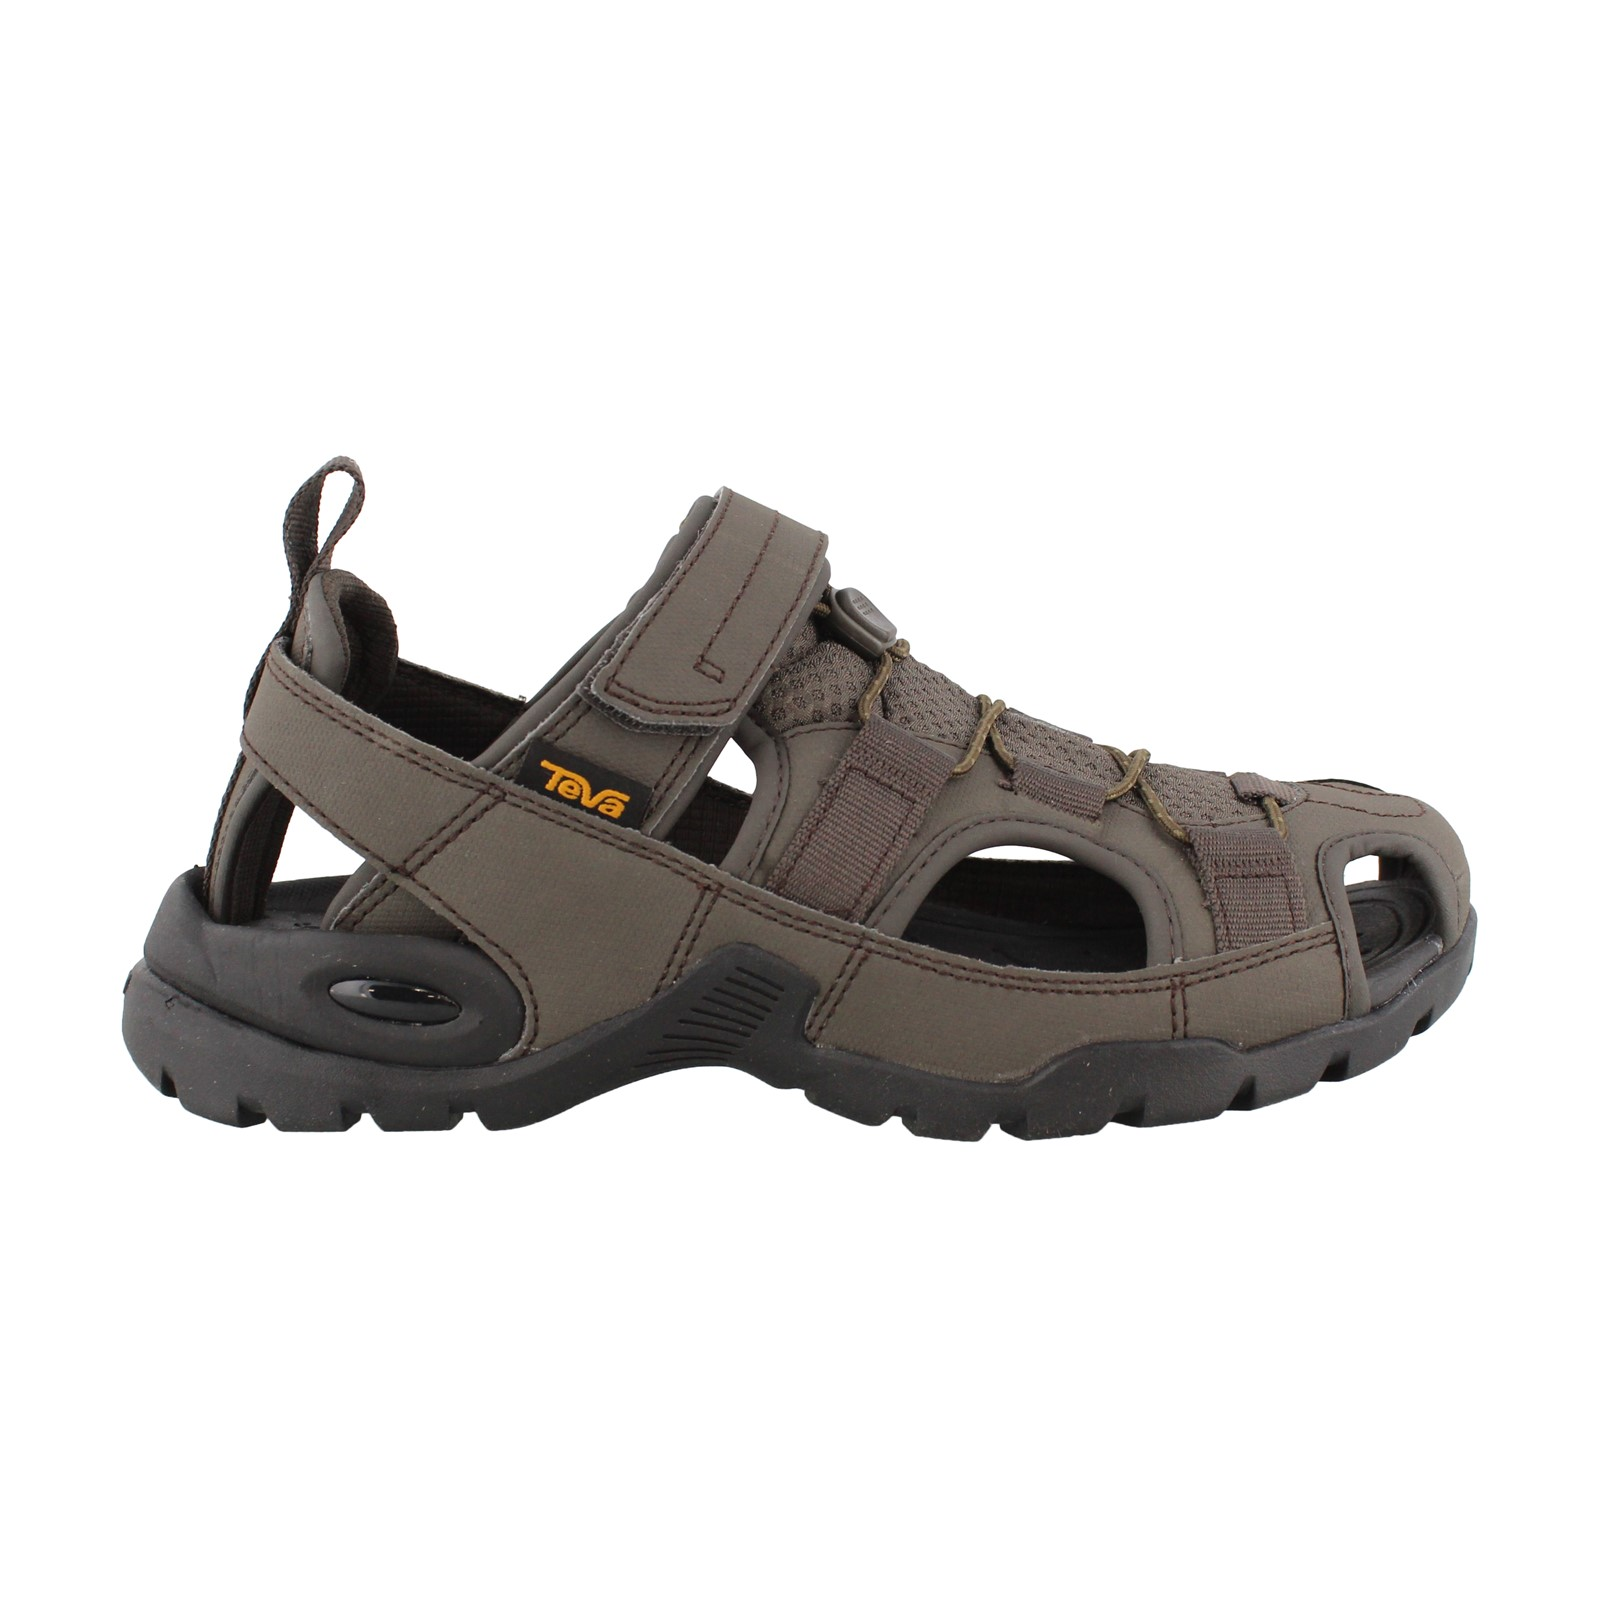 Men's Teva, Forebay 2 Fisherman Sandals